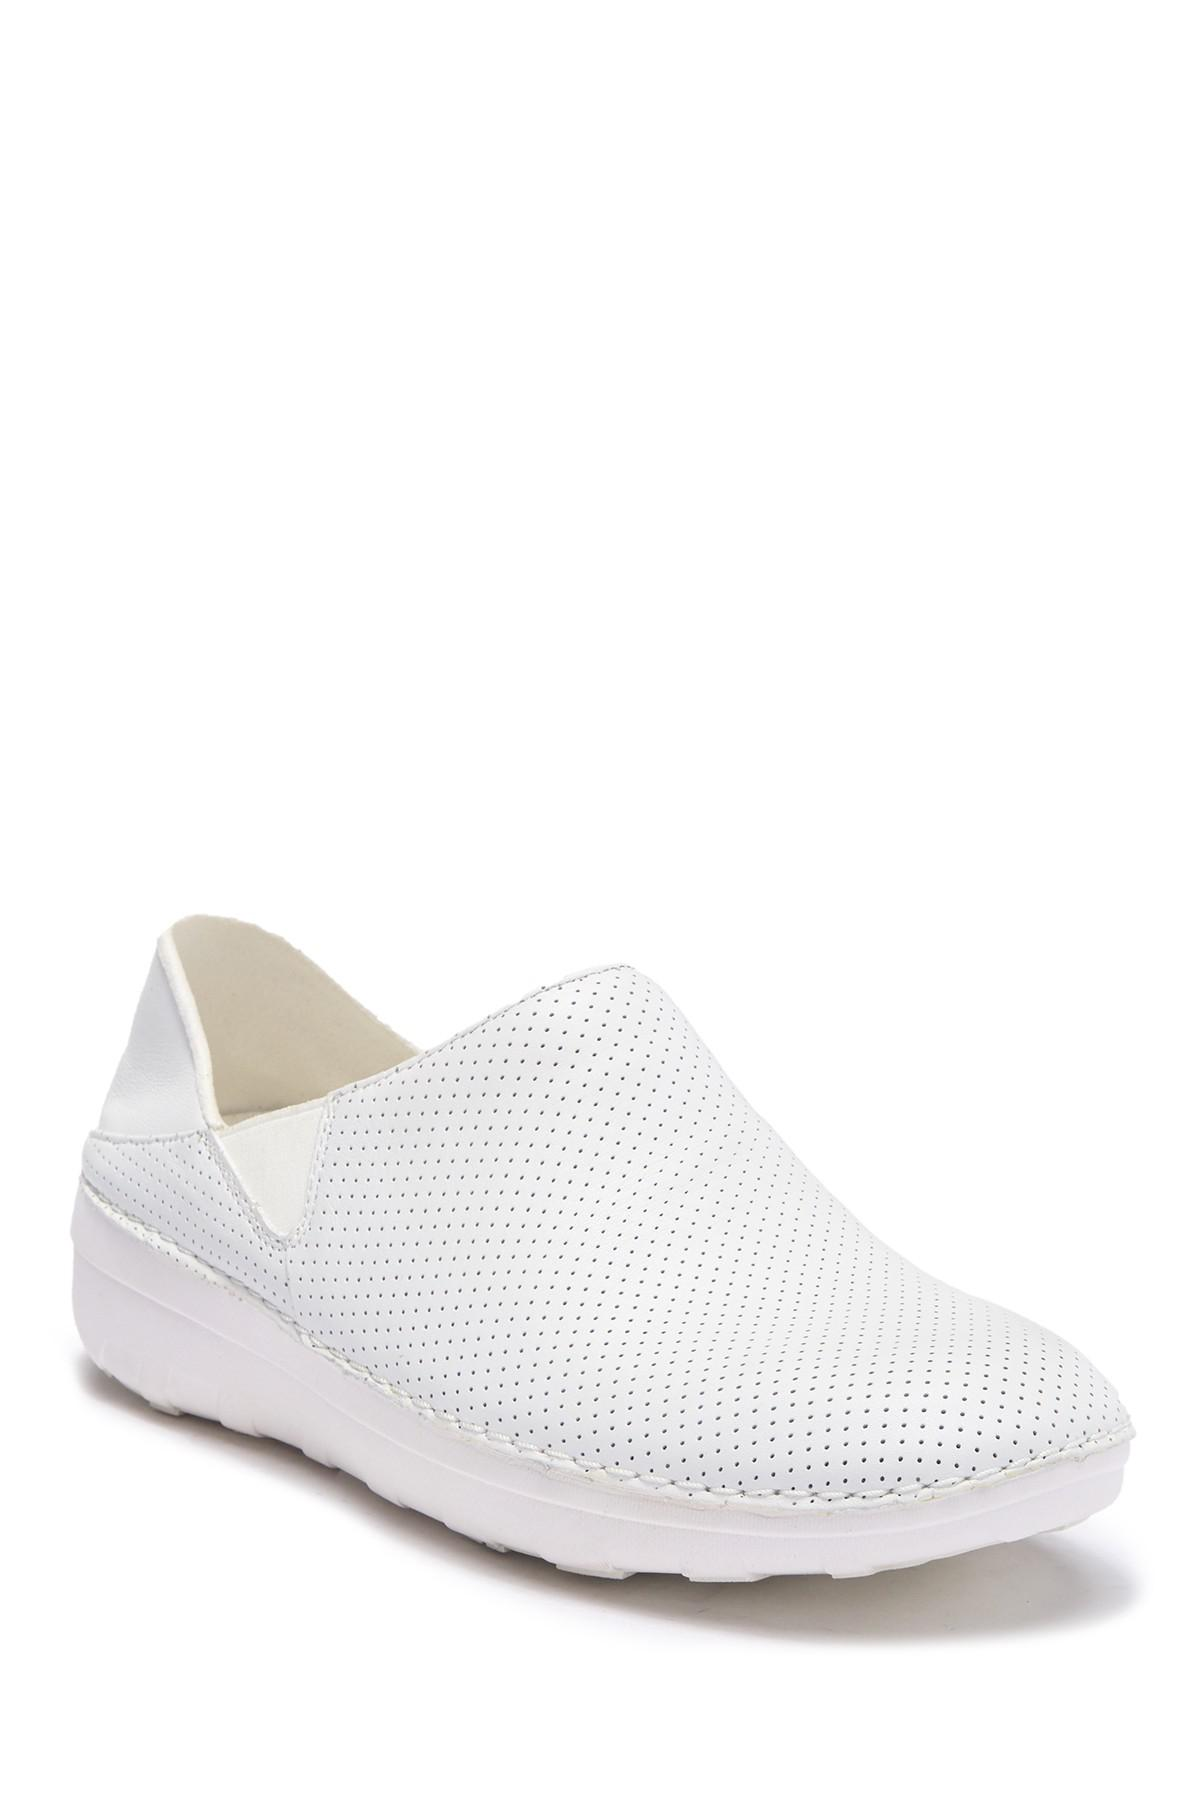 4a927deccad Lyst - Fitflop Perforated Leather Superloafer in White for Men